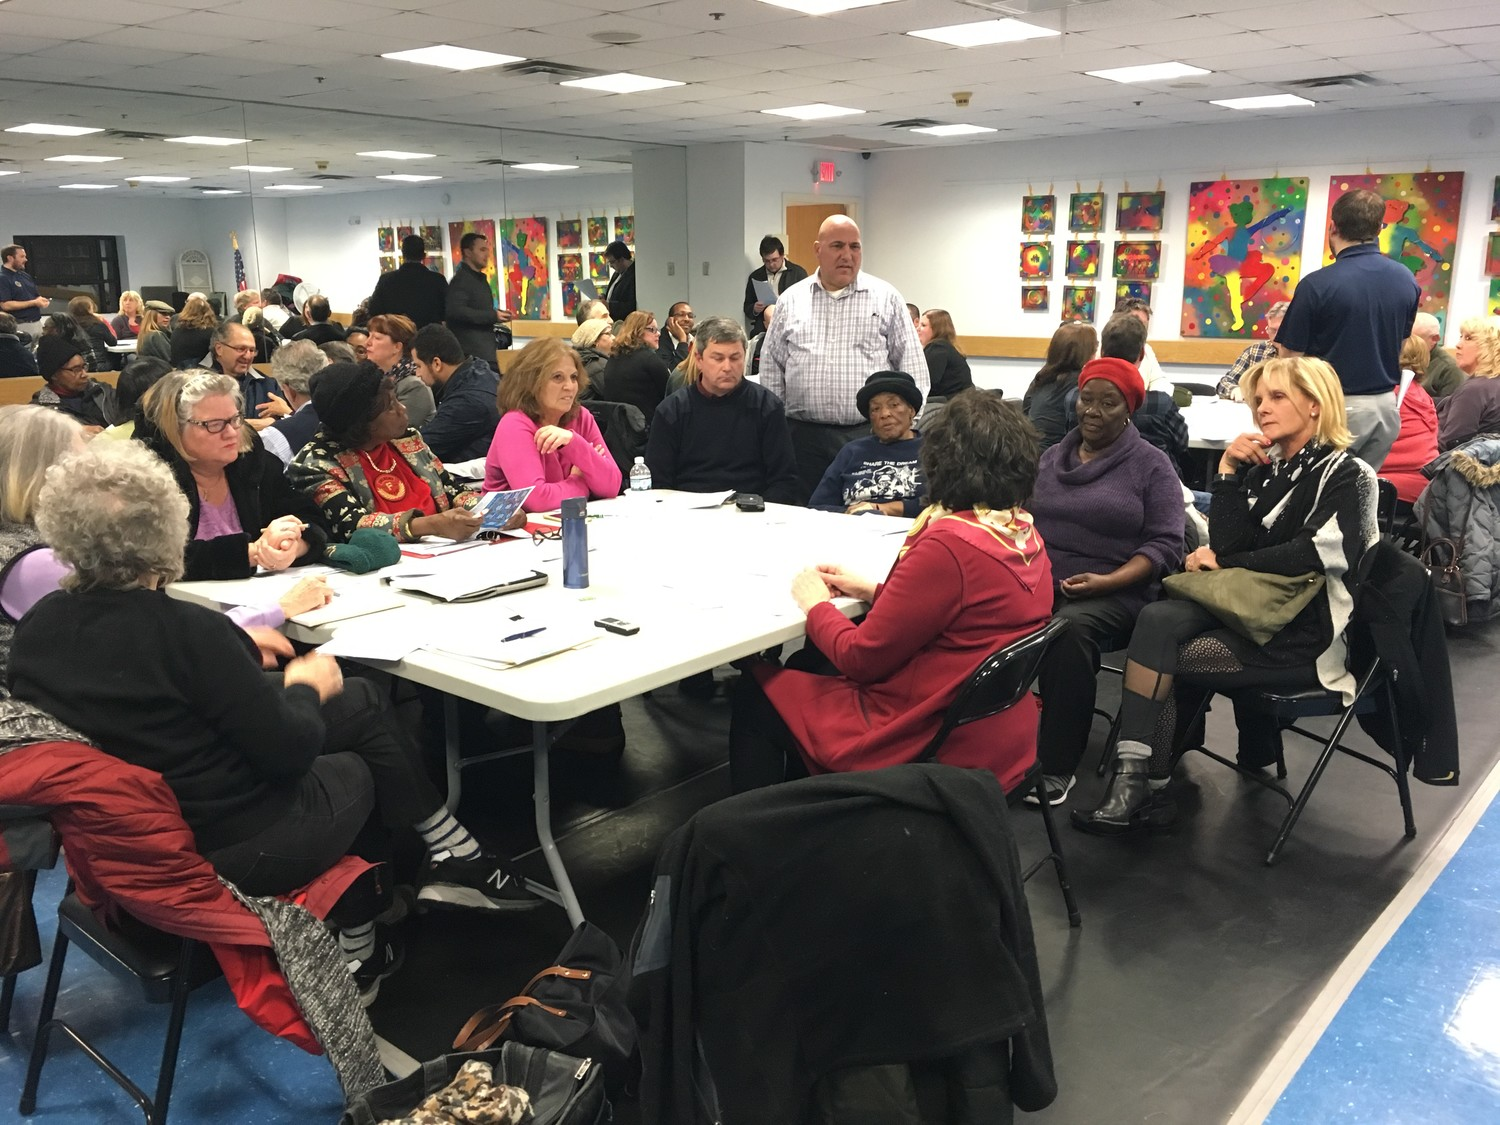 More than 40 residents gathered at the Magnolia Community Center on Jan. 25 for the latest public meeting to discuss the city's proposed comprehensive plan.